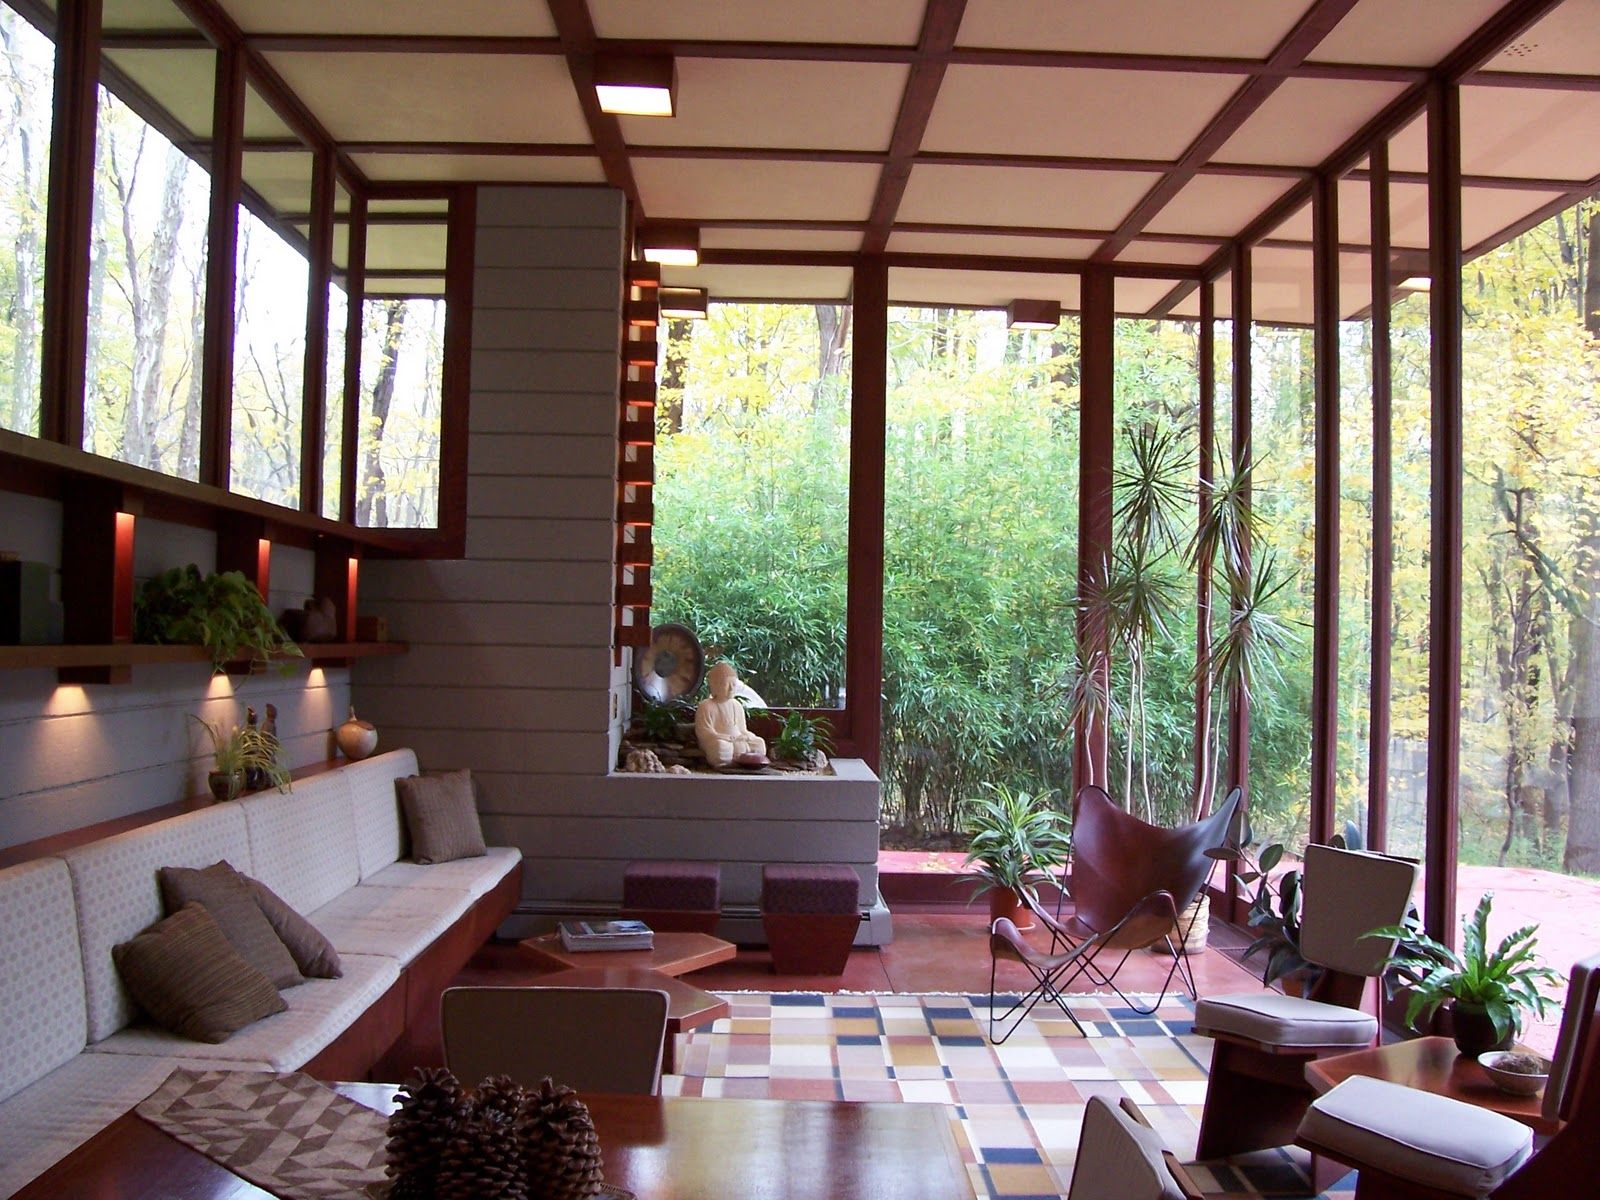 louis penfield house 1955 willoughby hills cleveland ohio usonian style - 1955 Home Design